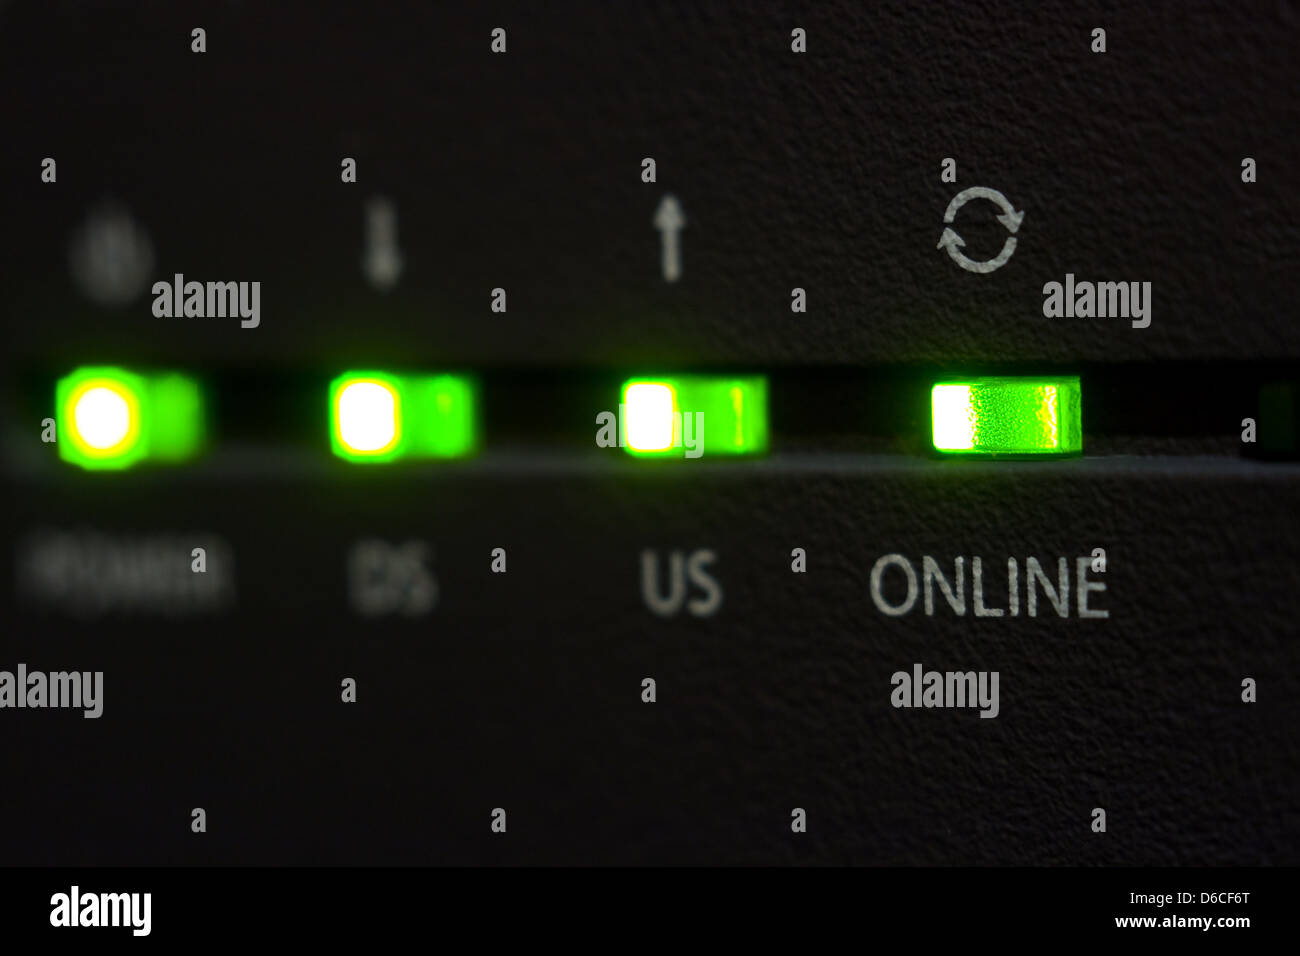 Emitting diode online on internet cable modem - Stock Image